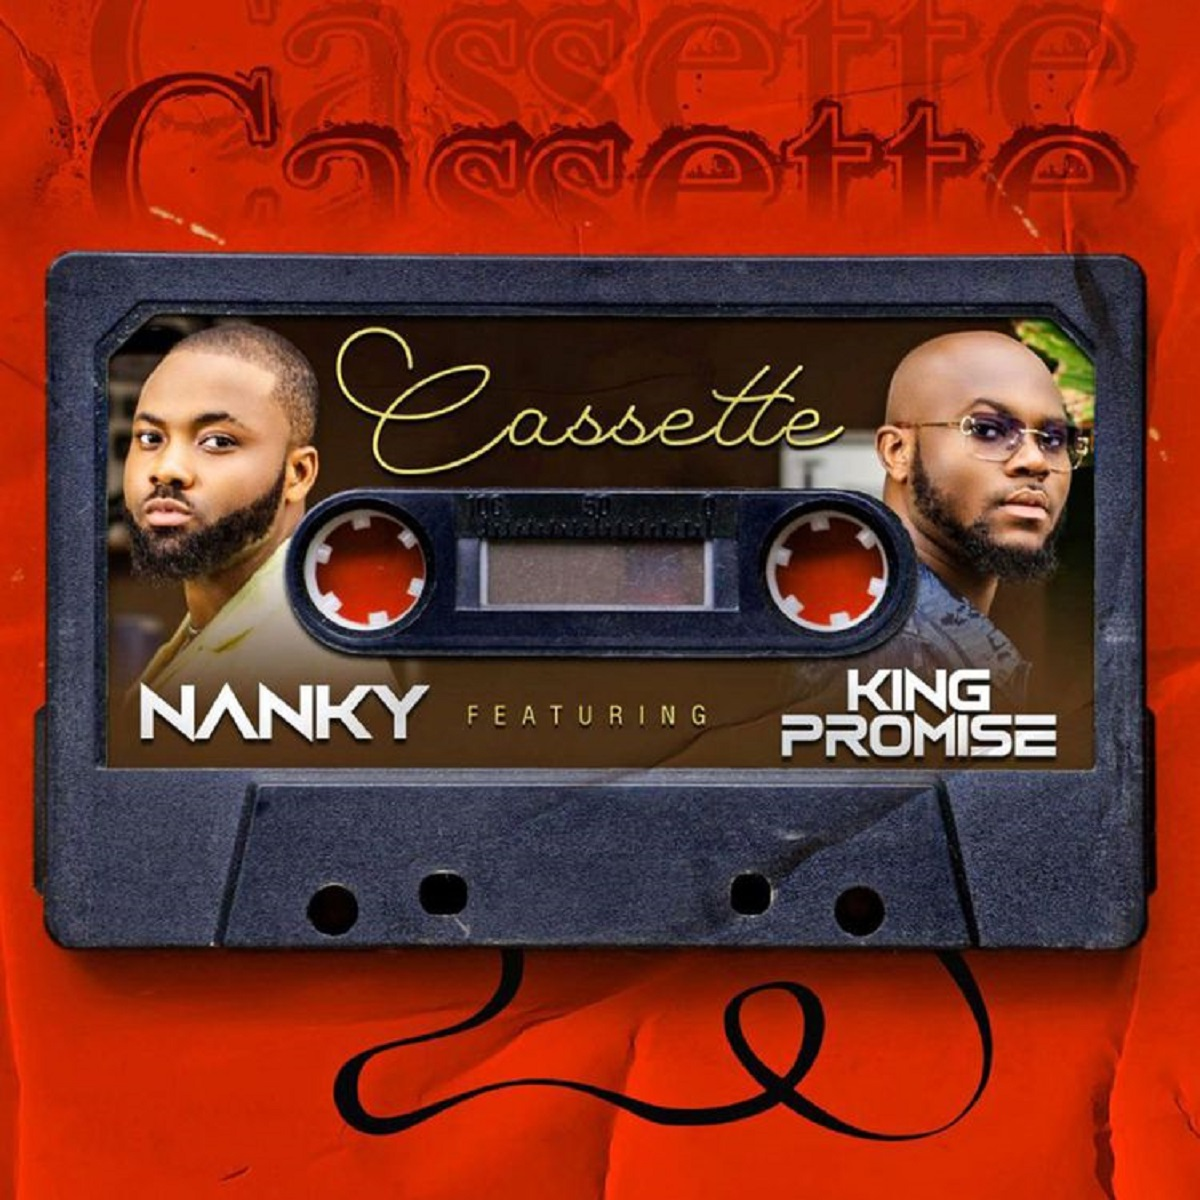 Cassette by Nanky feat. King Promise